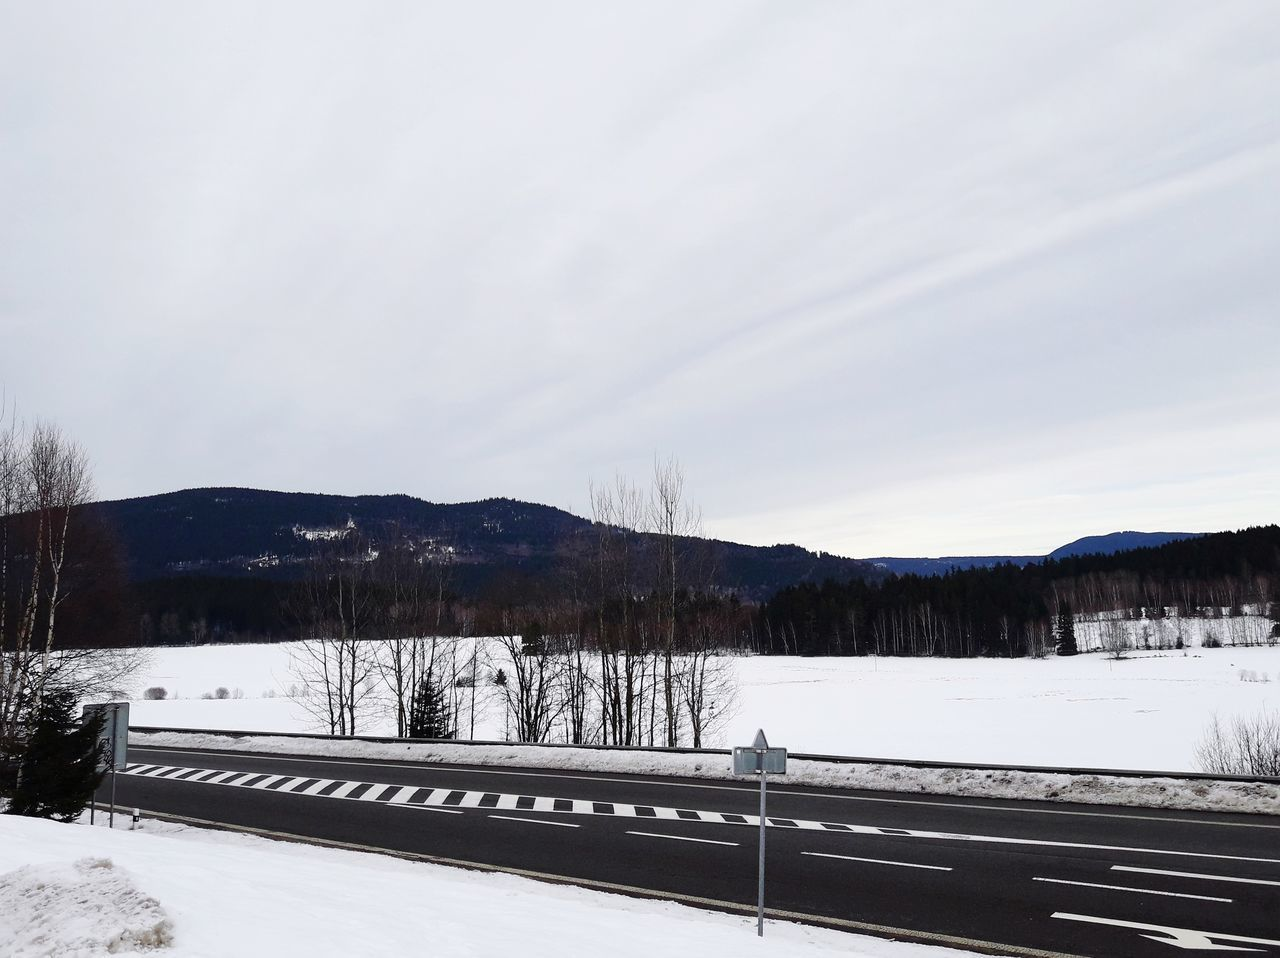 winter, snow, cold temperature, nature, scenics, beauty in nature, transportation, tranquil scene, sky, tranquility, outdoors, no people, mountain, road, day, landscape, tree